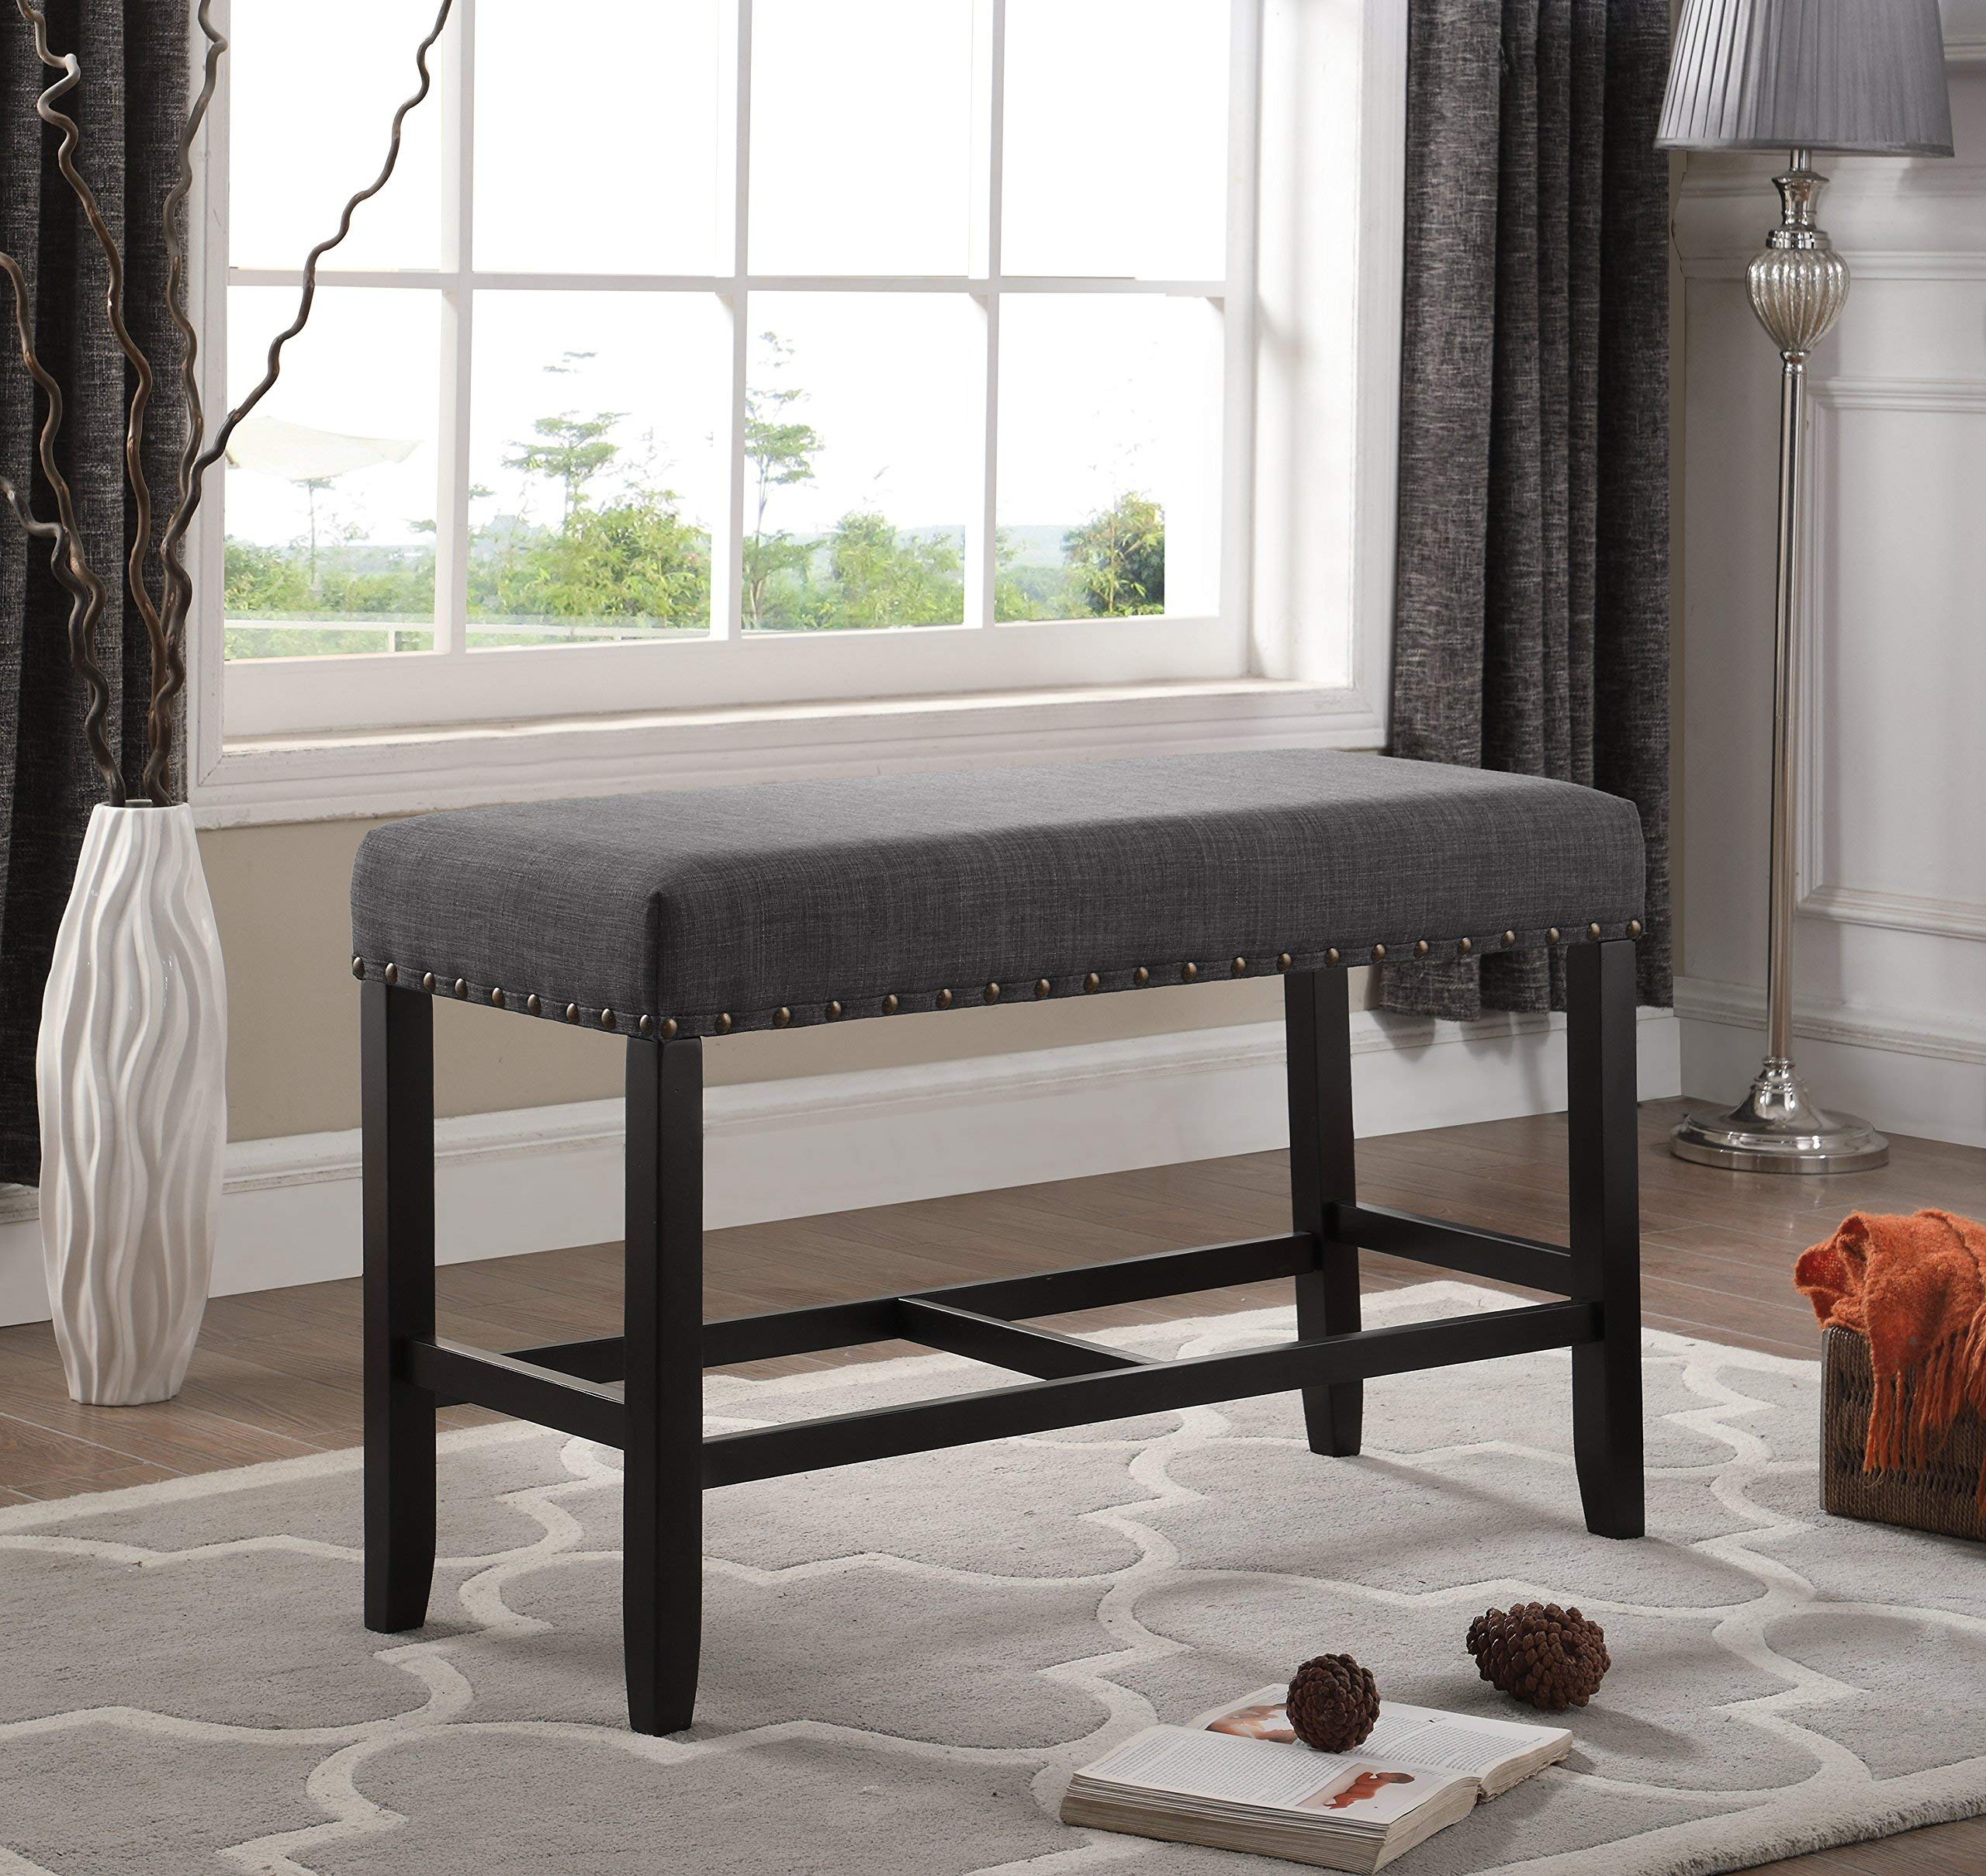 Roundhill Furniture PB162GY Biony Fabric Counter Height Dining Bench with Nailhead Trim, Grey